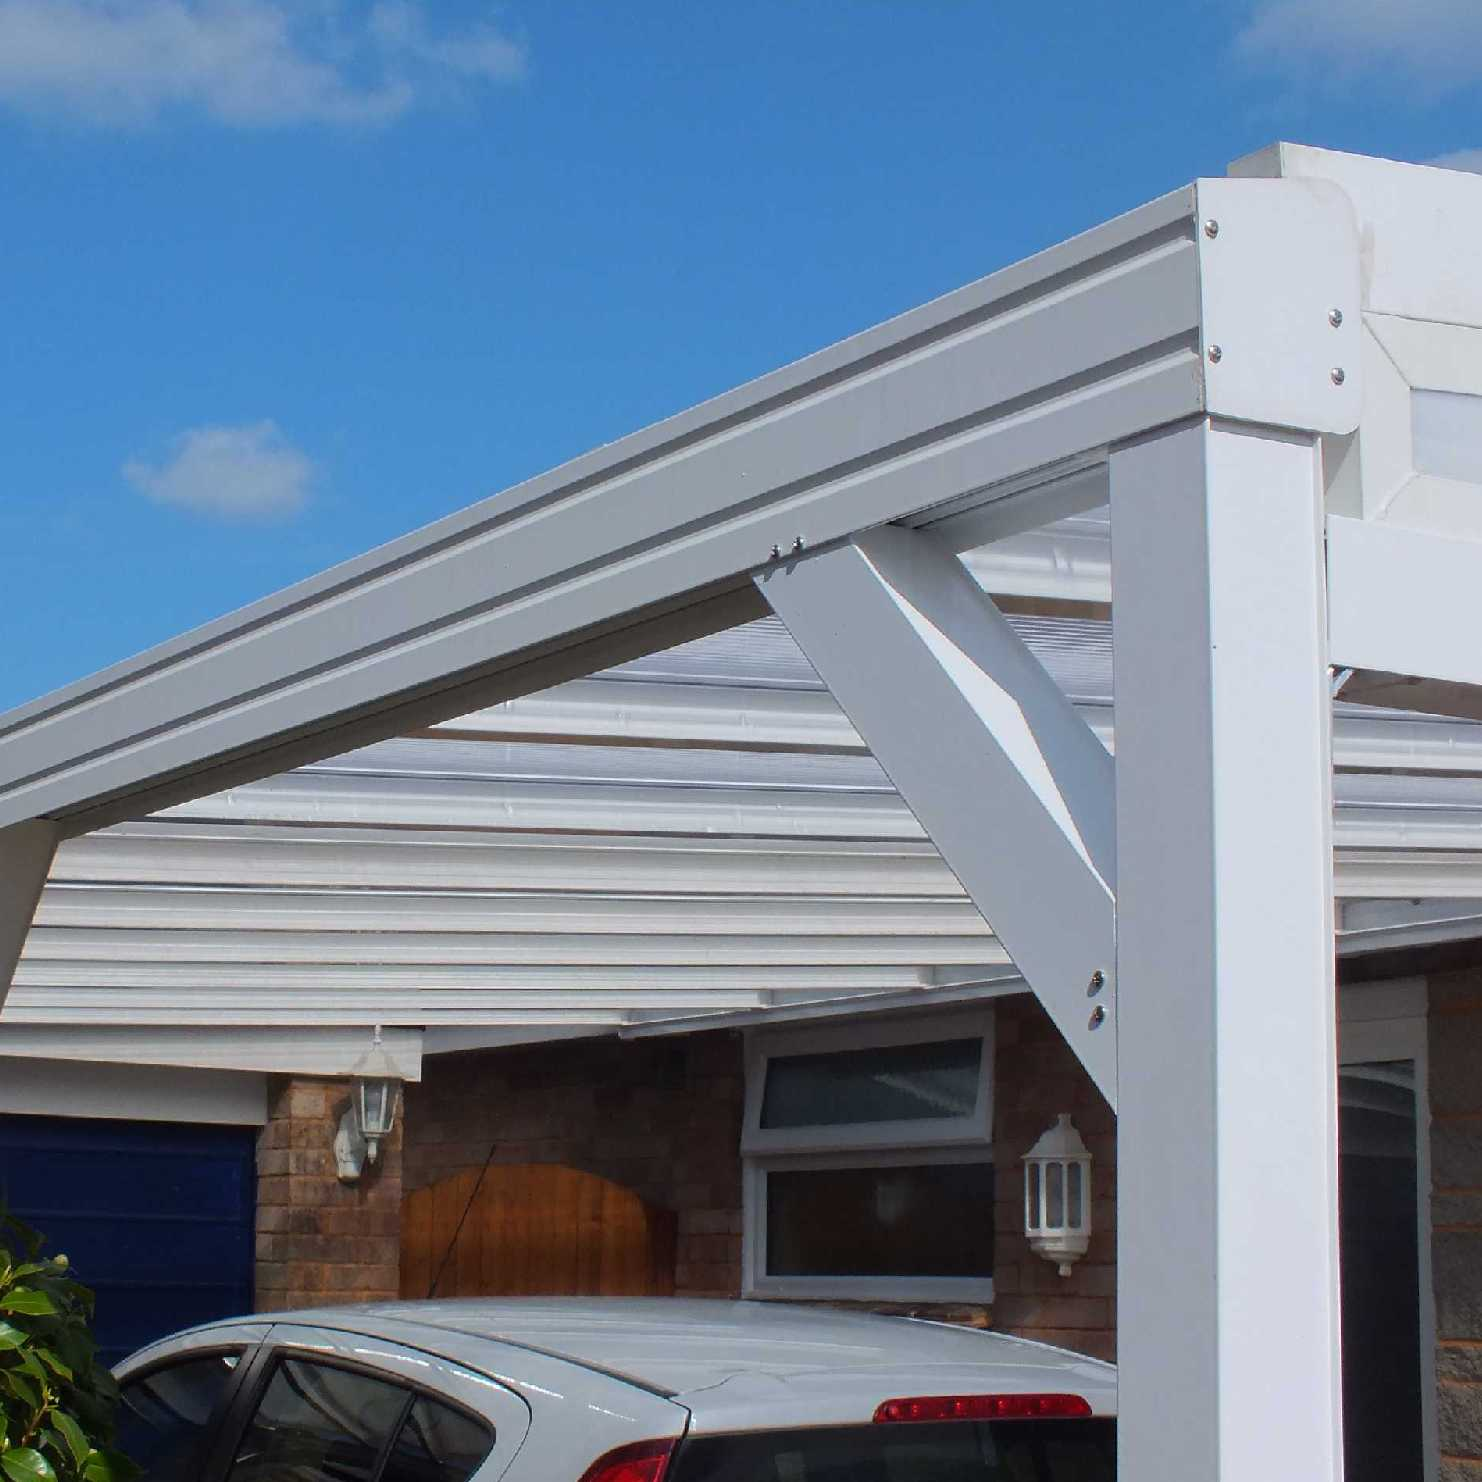 Buy Omega Smart Lean-To Canopy with 16mm Polycarbonate Glazing - 2.8m (W) x 3.5m (P), (2) Supporting Posts online today